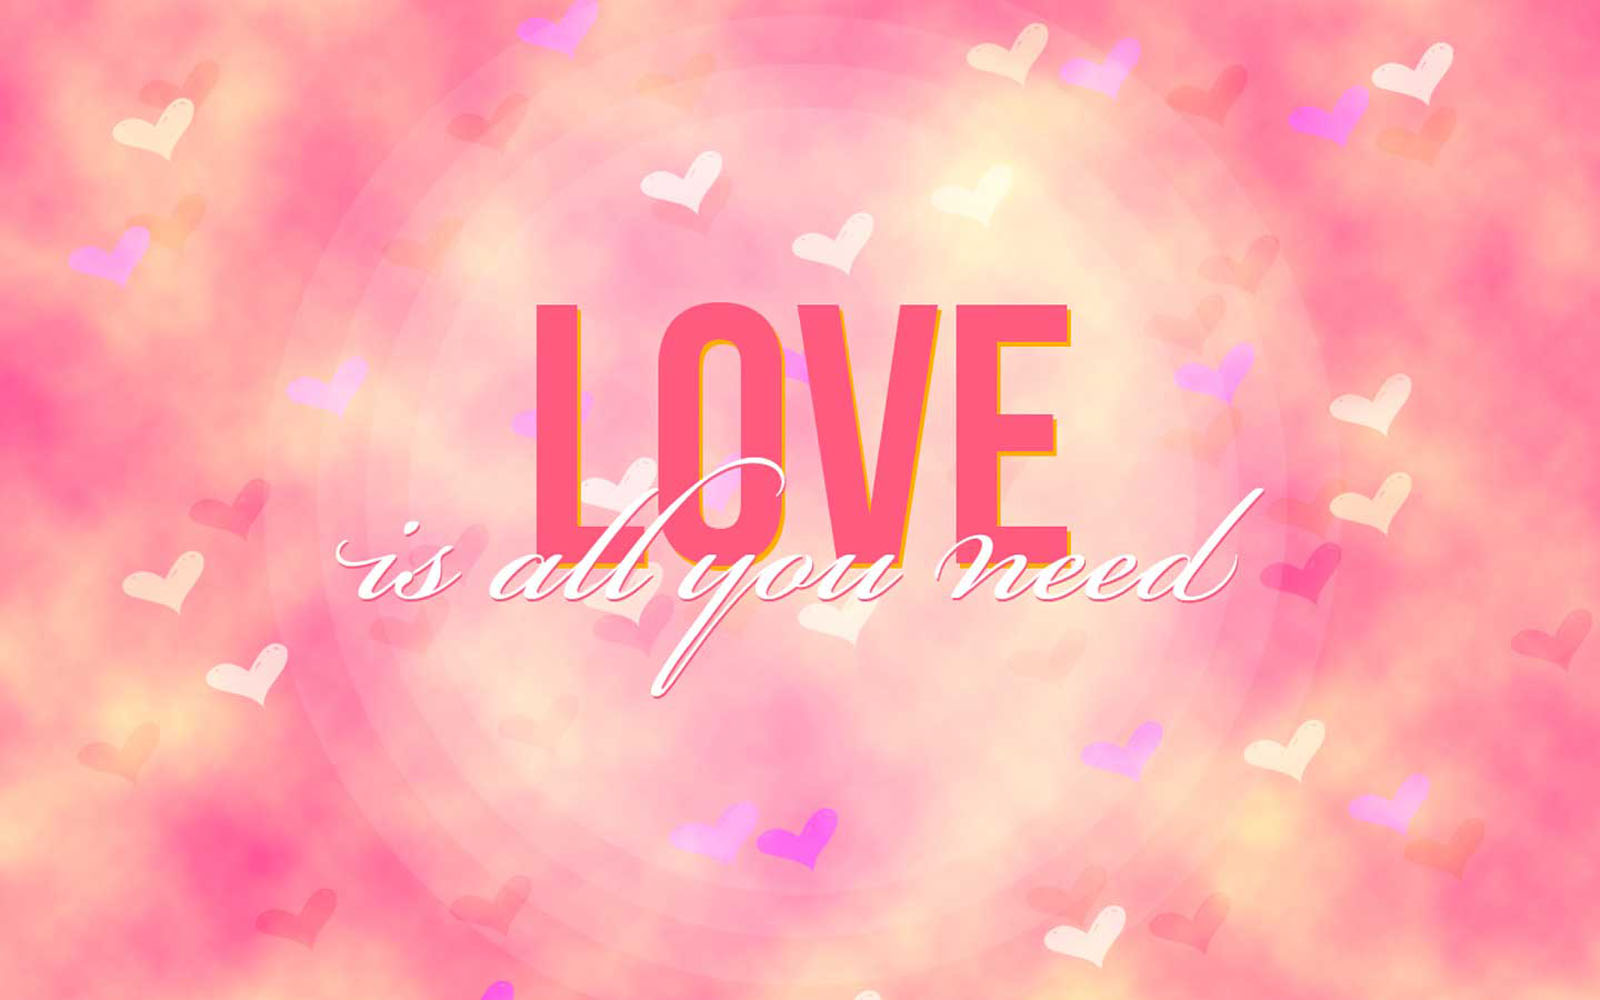 Love Is All Wallpaper : wallpapers: All You Need Is Love Wallpapers